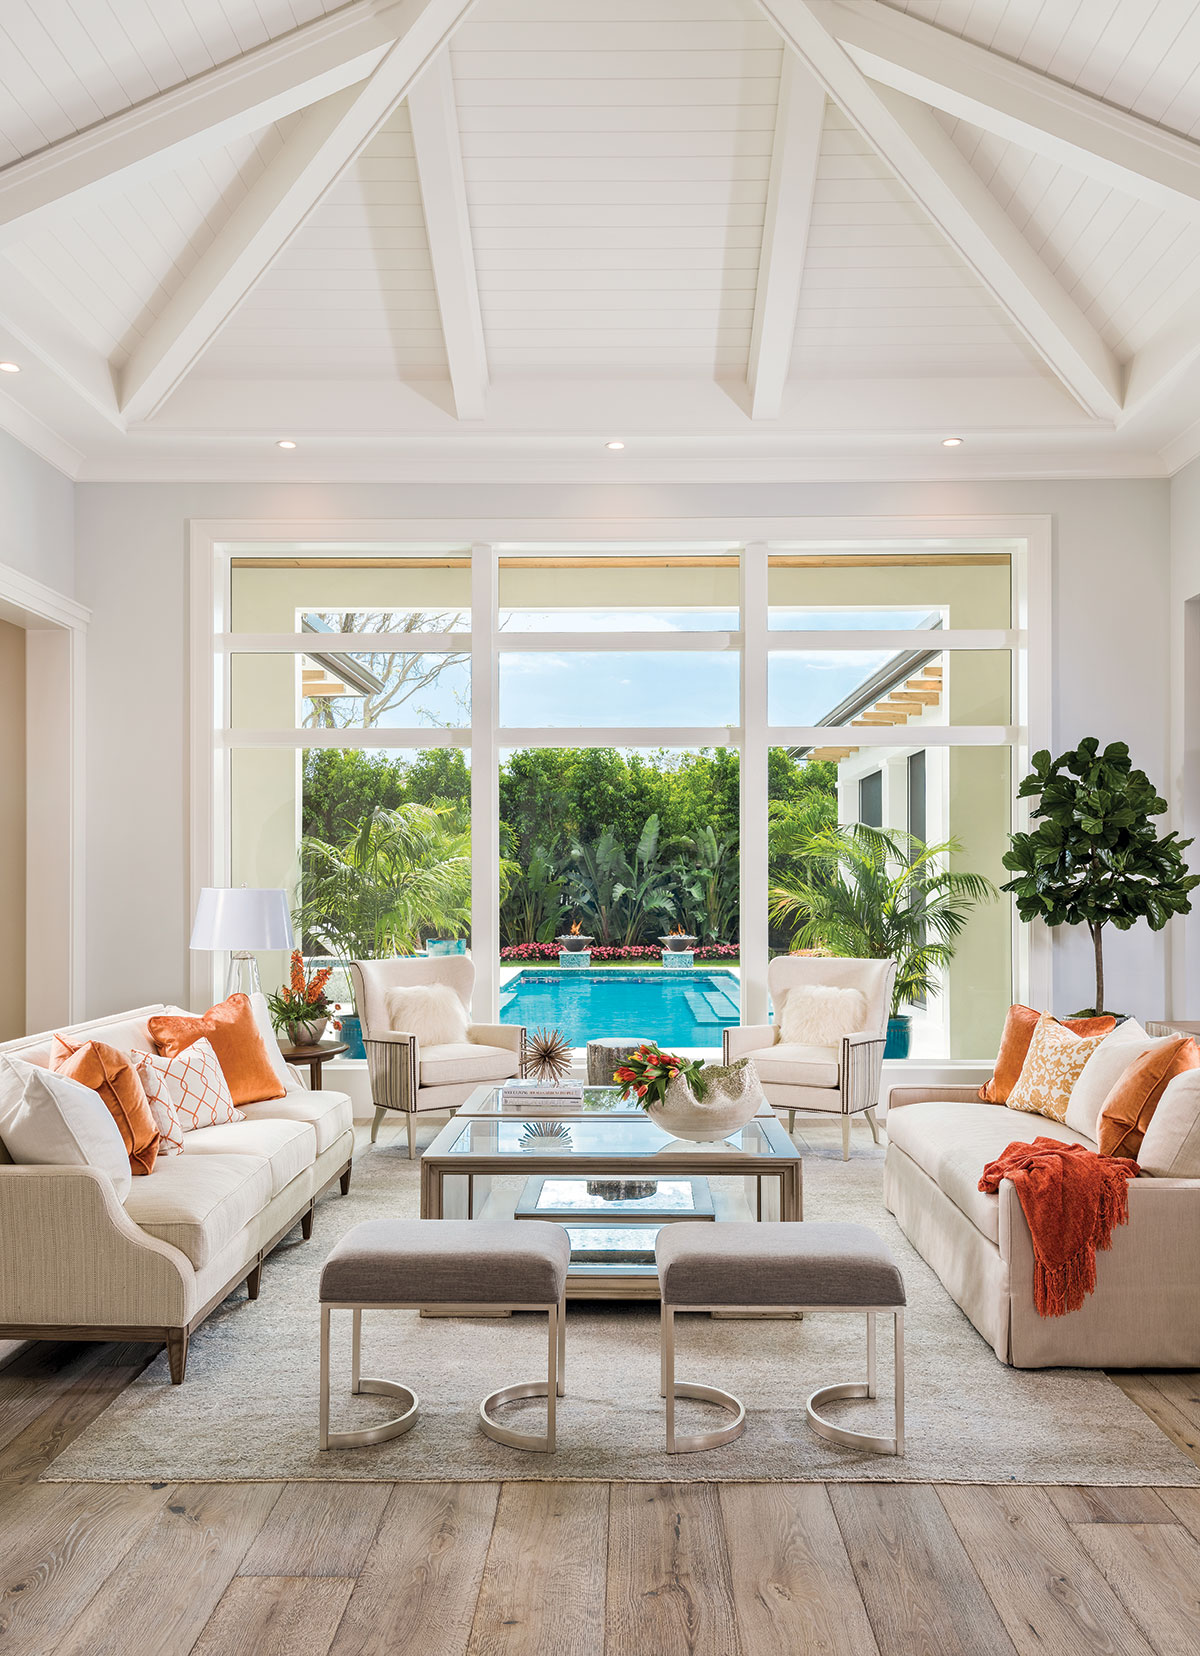 The landscape design surrounding the pool is visible from the great room and affords the home complete privacy. A pair of ivory colored armchairs with sides wrapped in striped velvet and gray-linen ottomans with brushed-nickel bases flank antique cocktail tables from Habersham. A light gray, hand-knotted area rug from Loloi grounds the space in comfort.